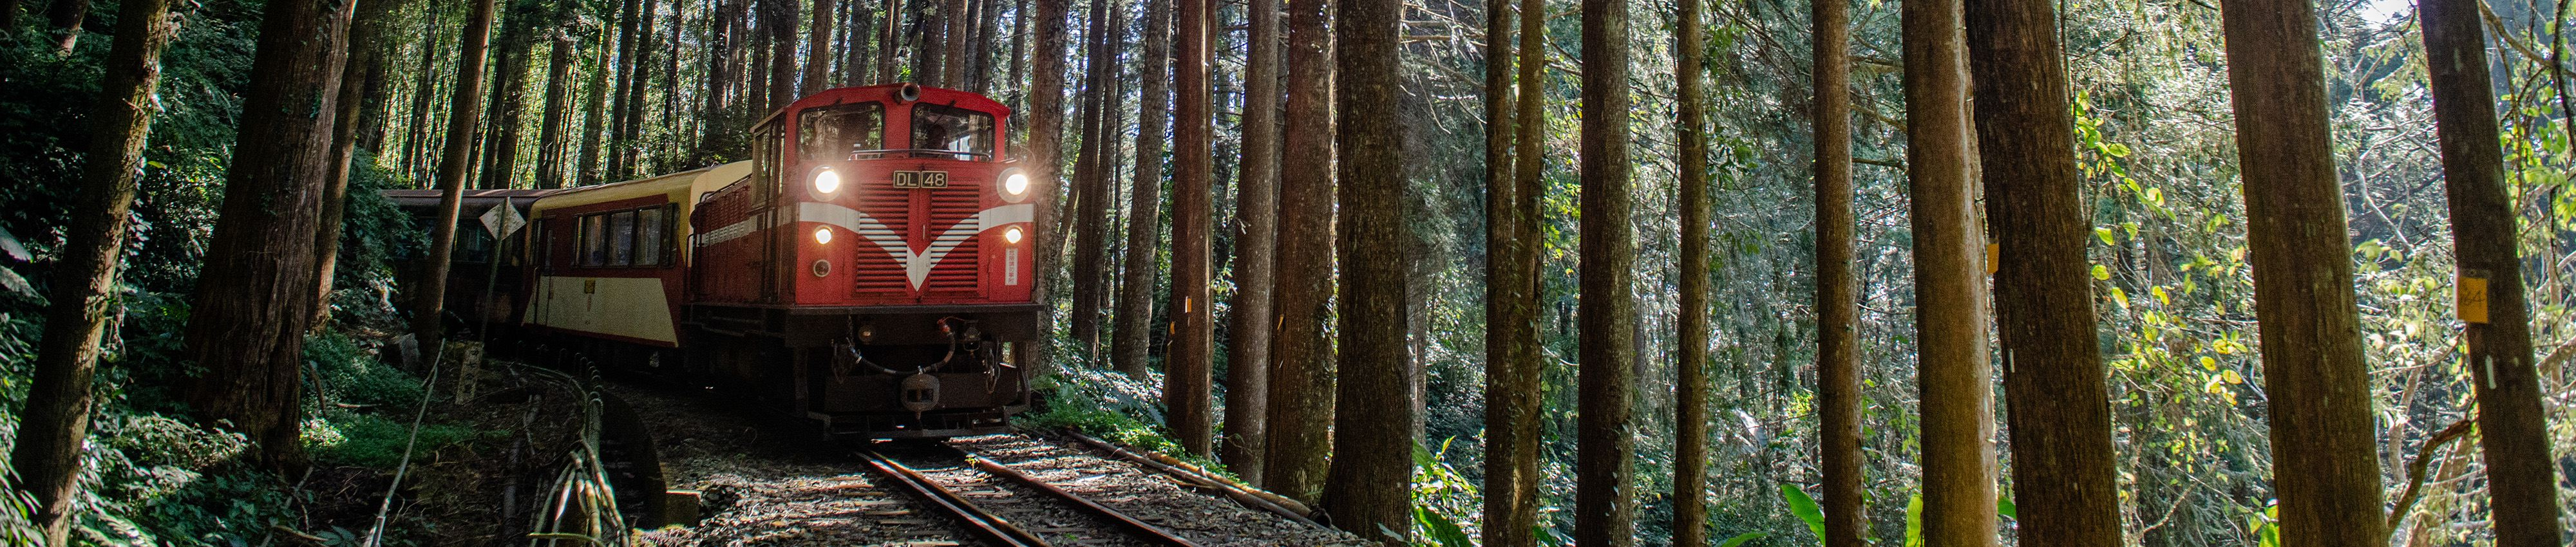 Forestry Culture & Railways